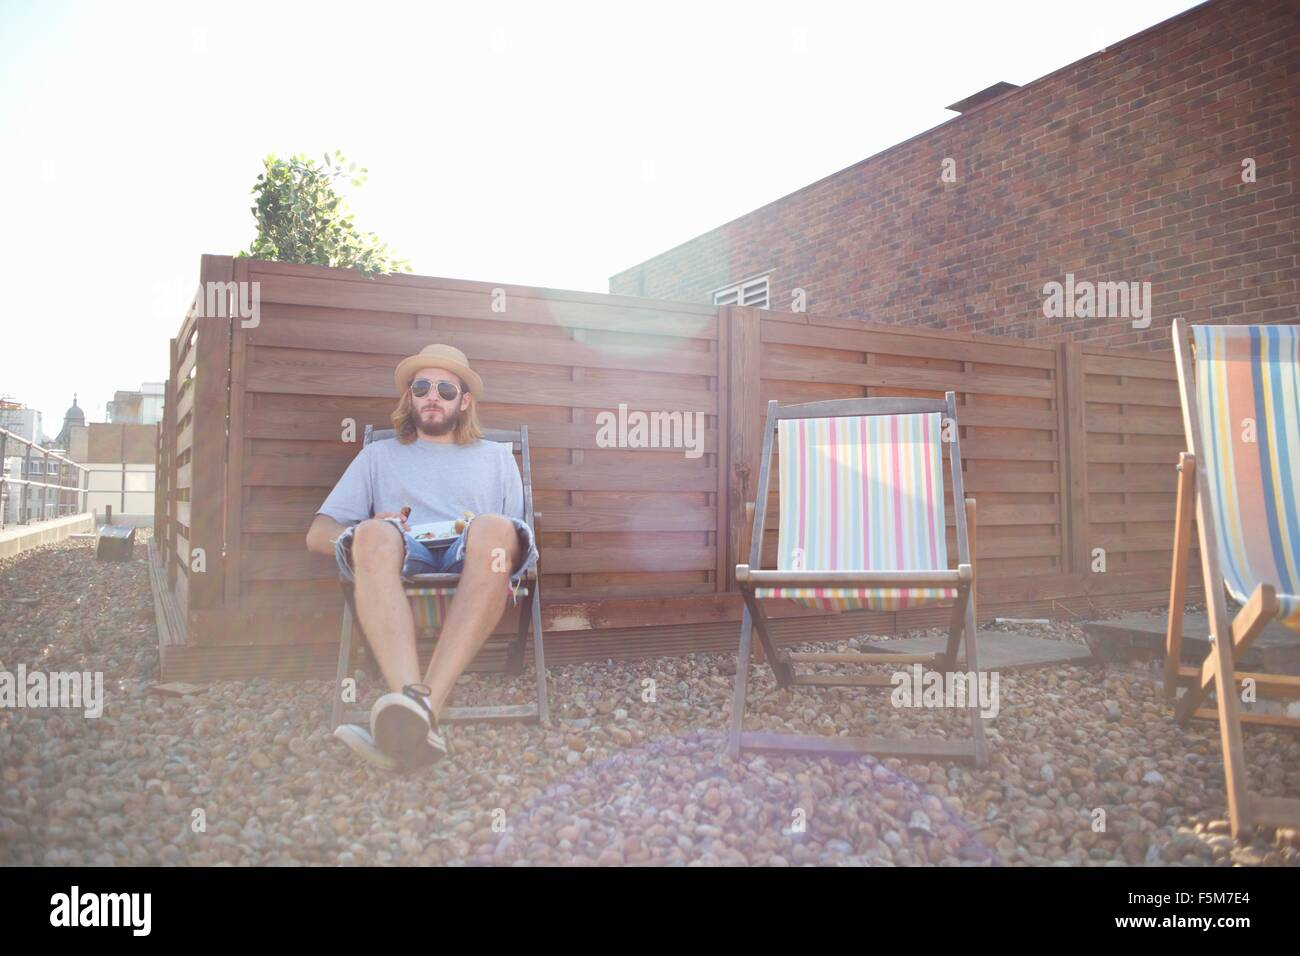 Young man alone on deckchair at rooftop party - Stock Image